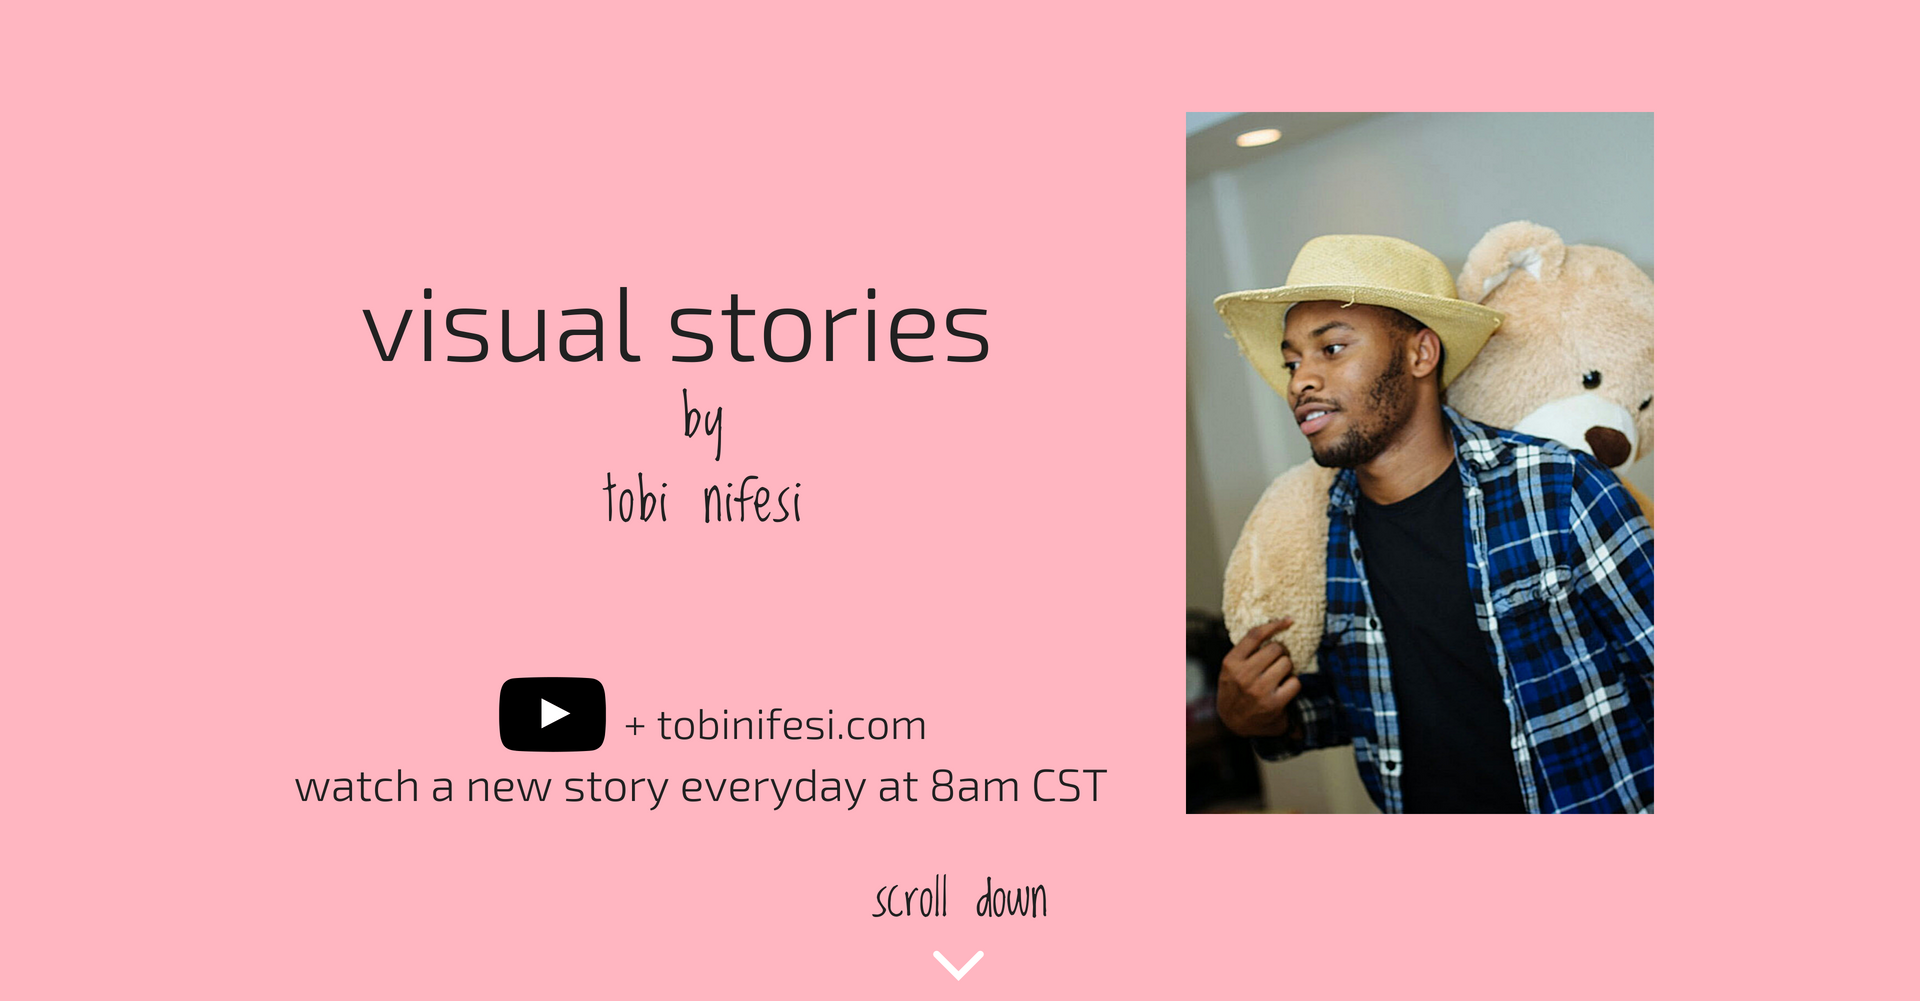 Copy of visual stories banner.png